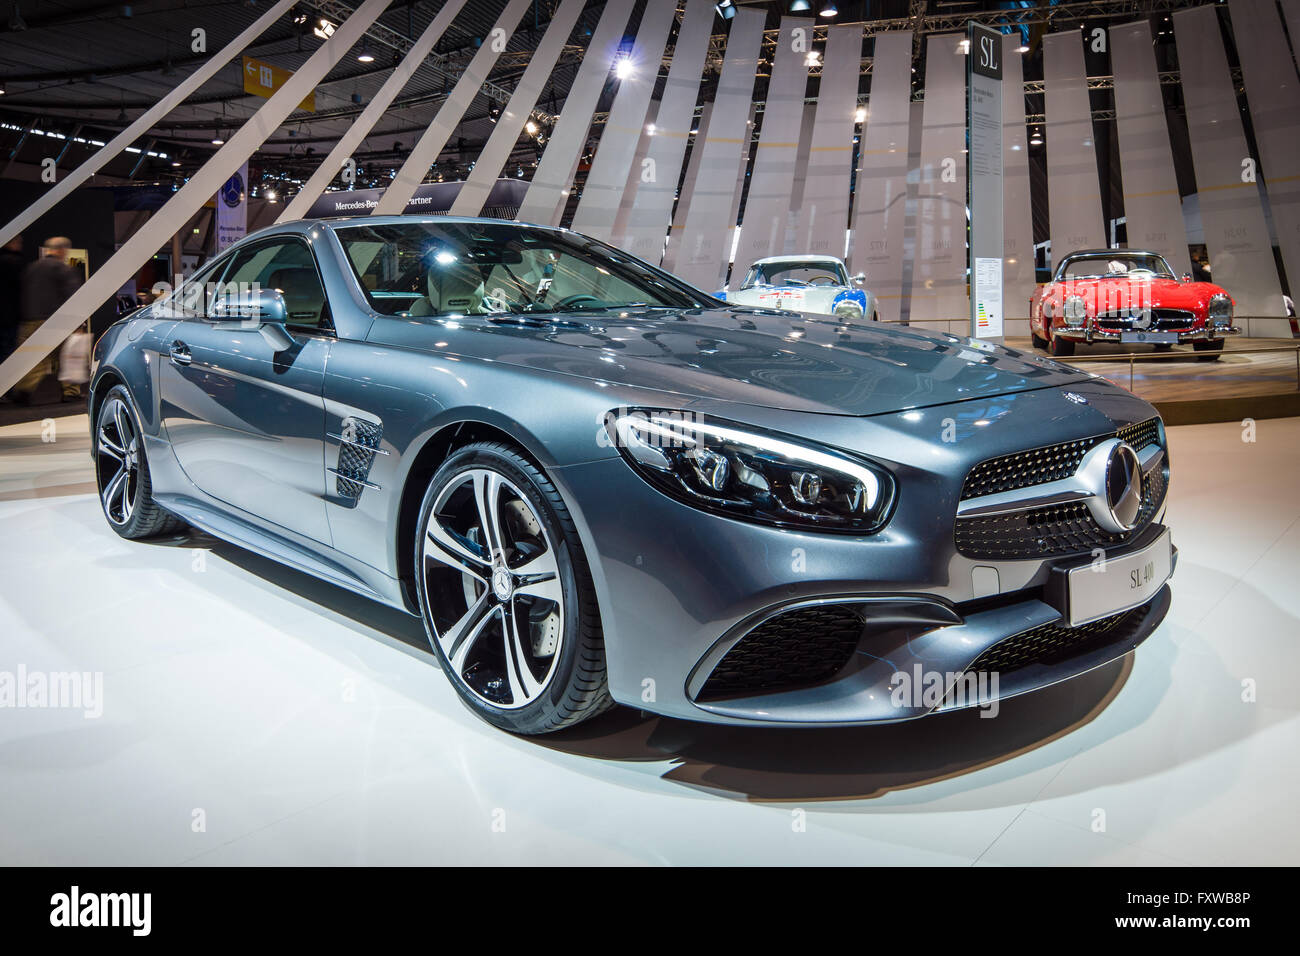 Sports car mercedes benz sl 400 r231 2016 stock photo for Sports car mercedes benz